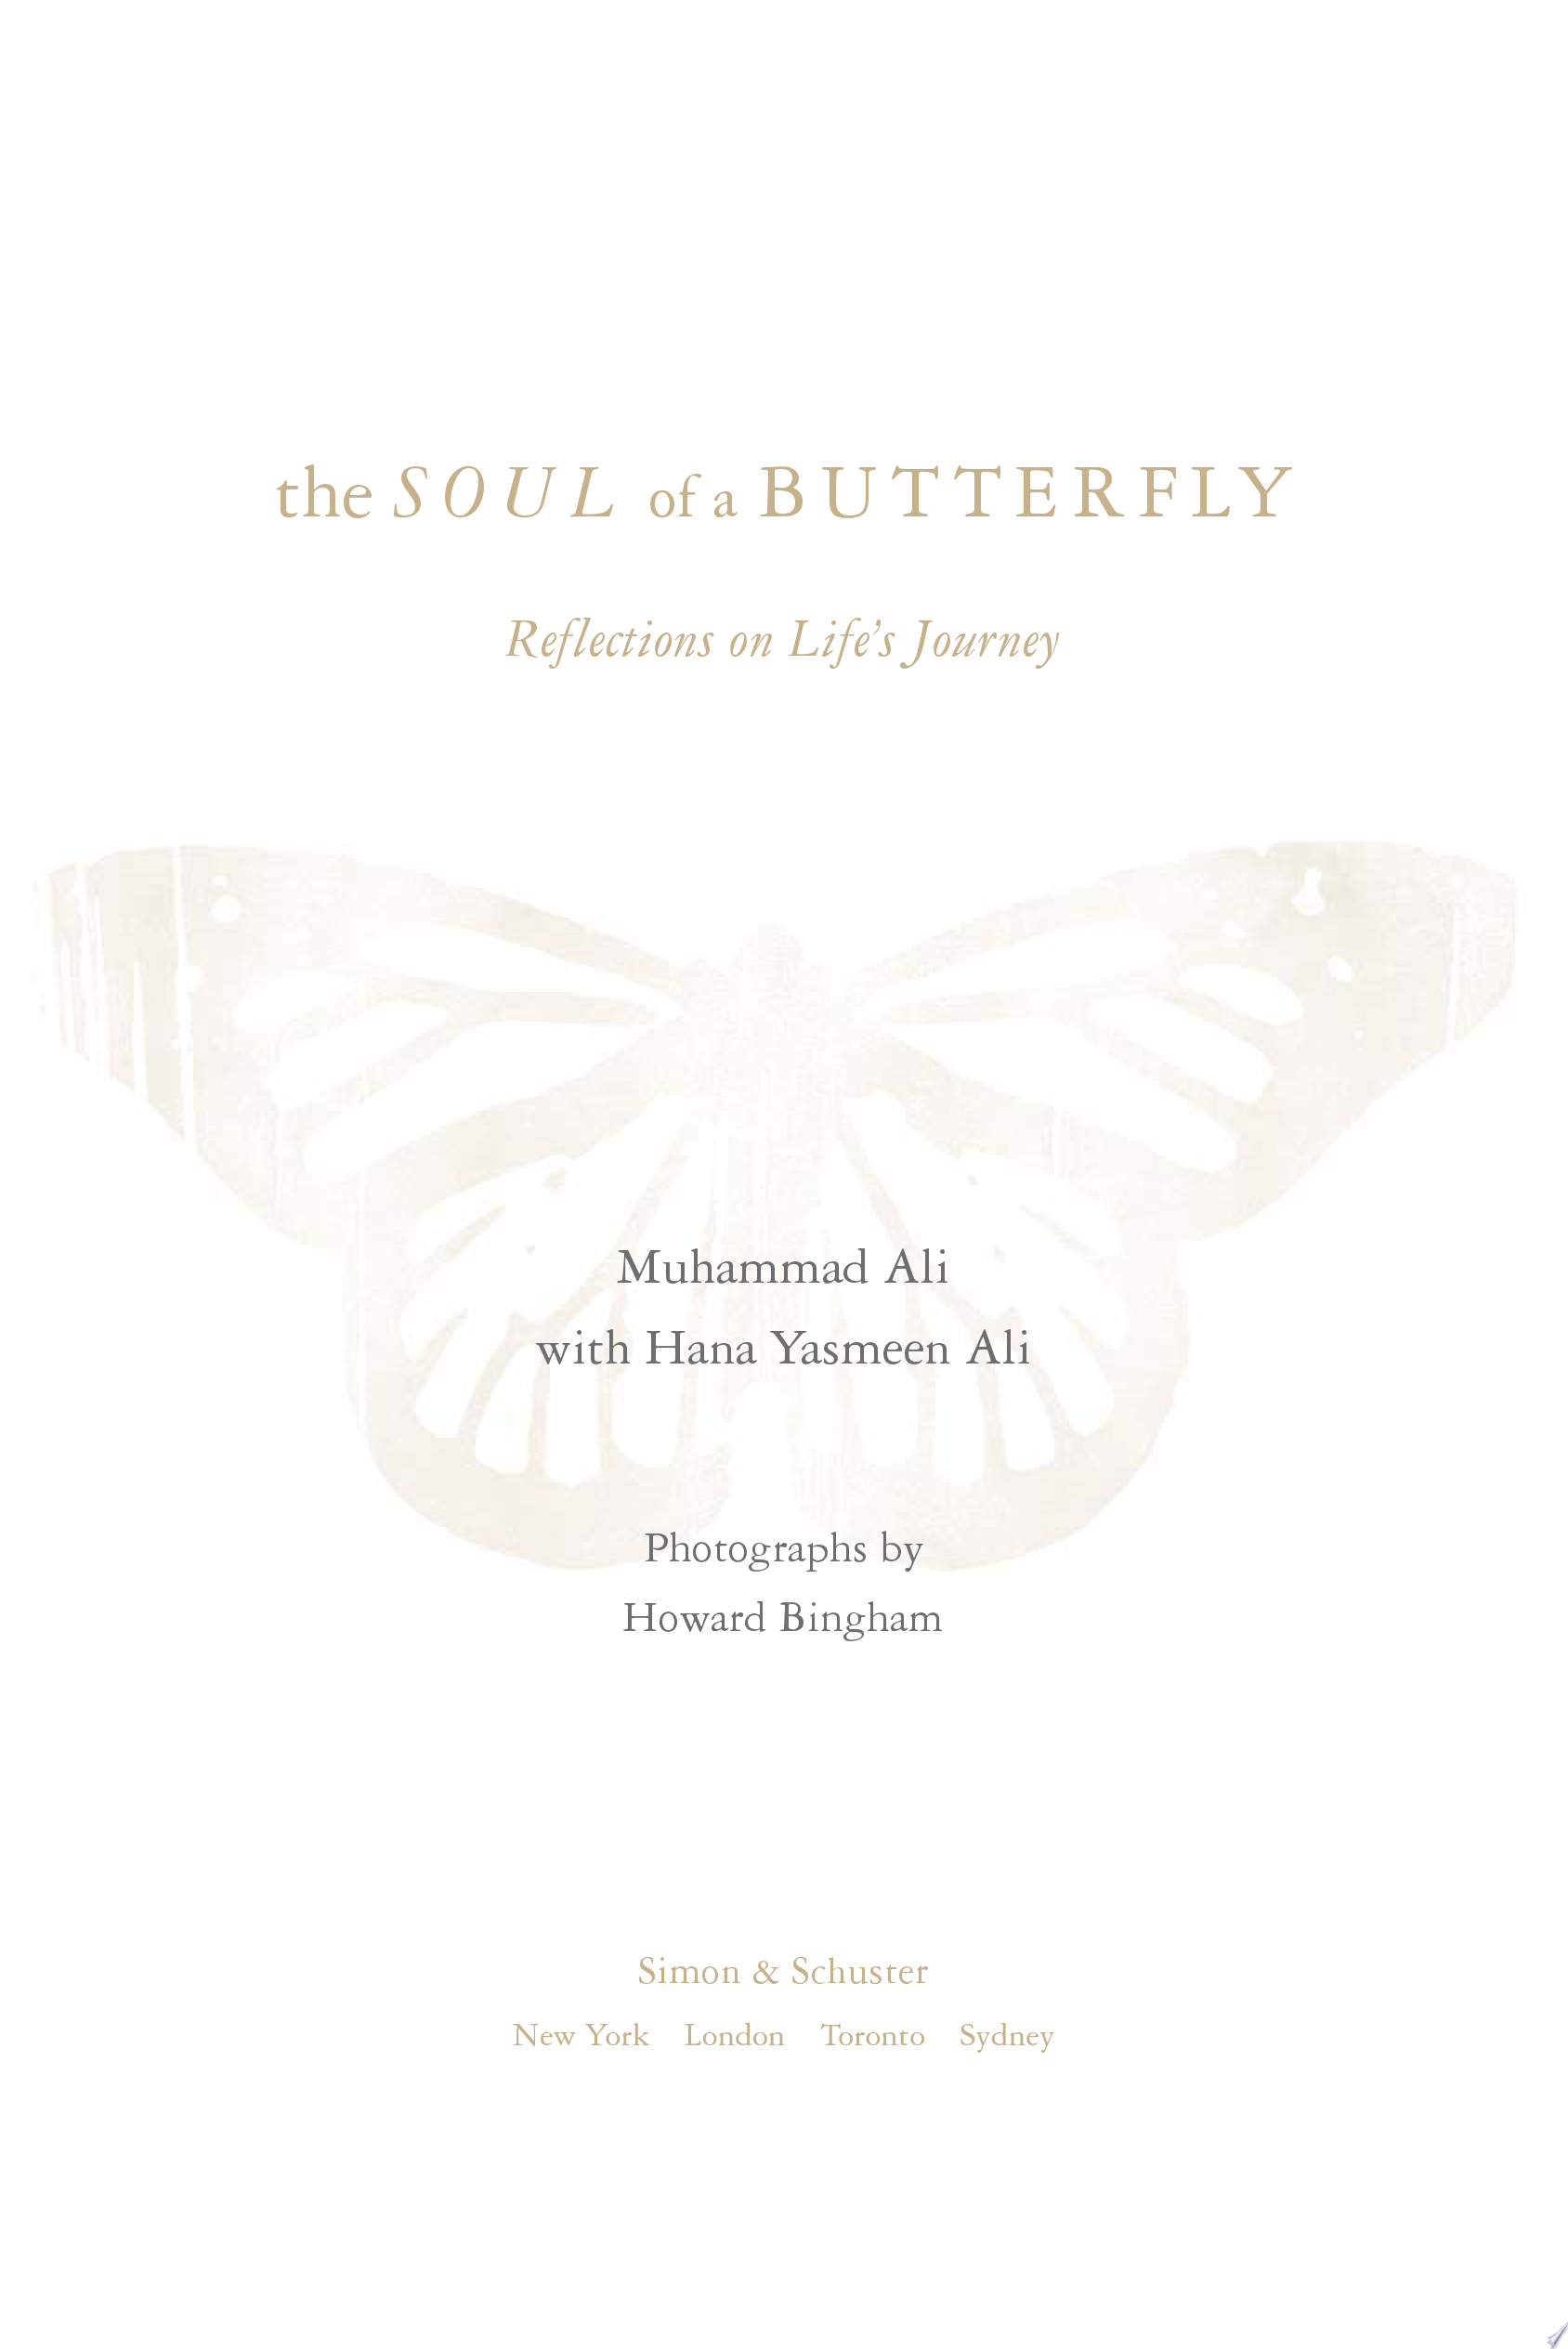 The Soul of a Butterfly